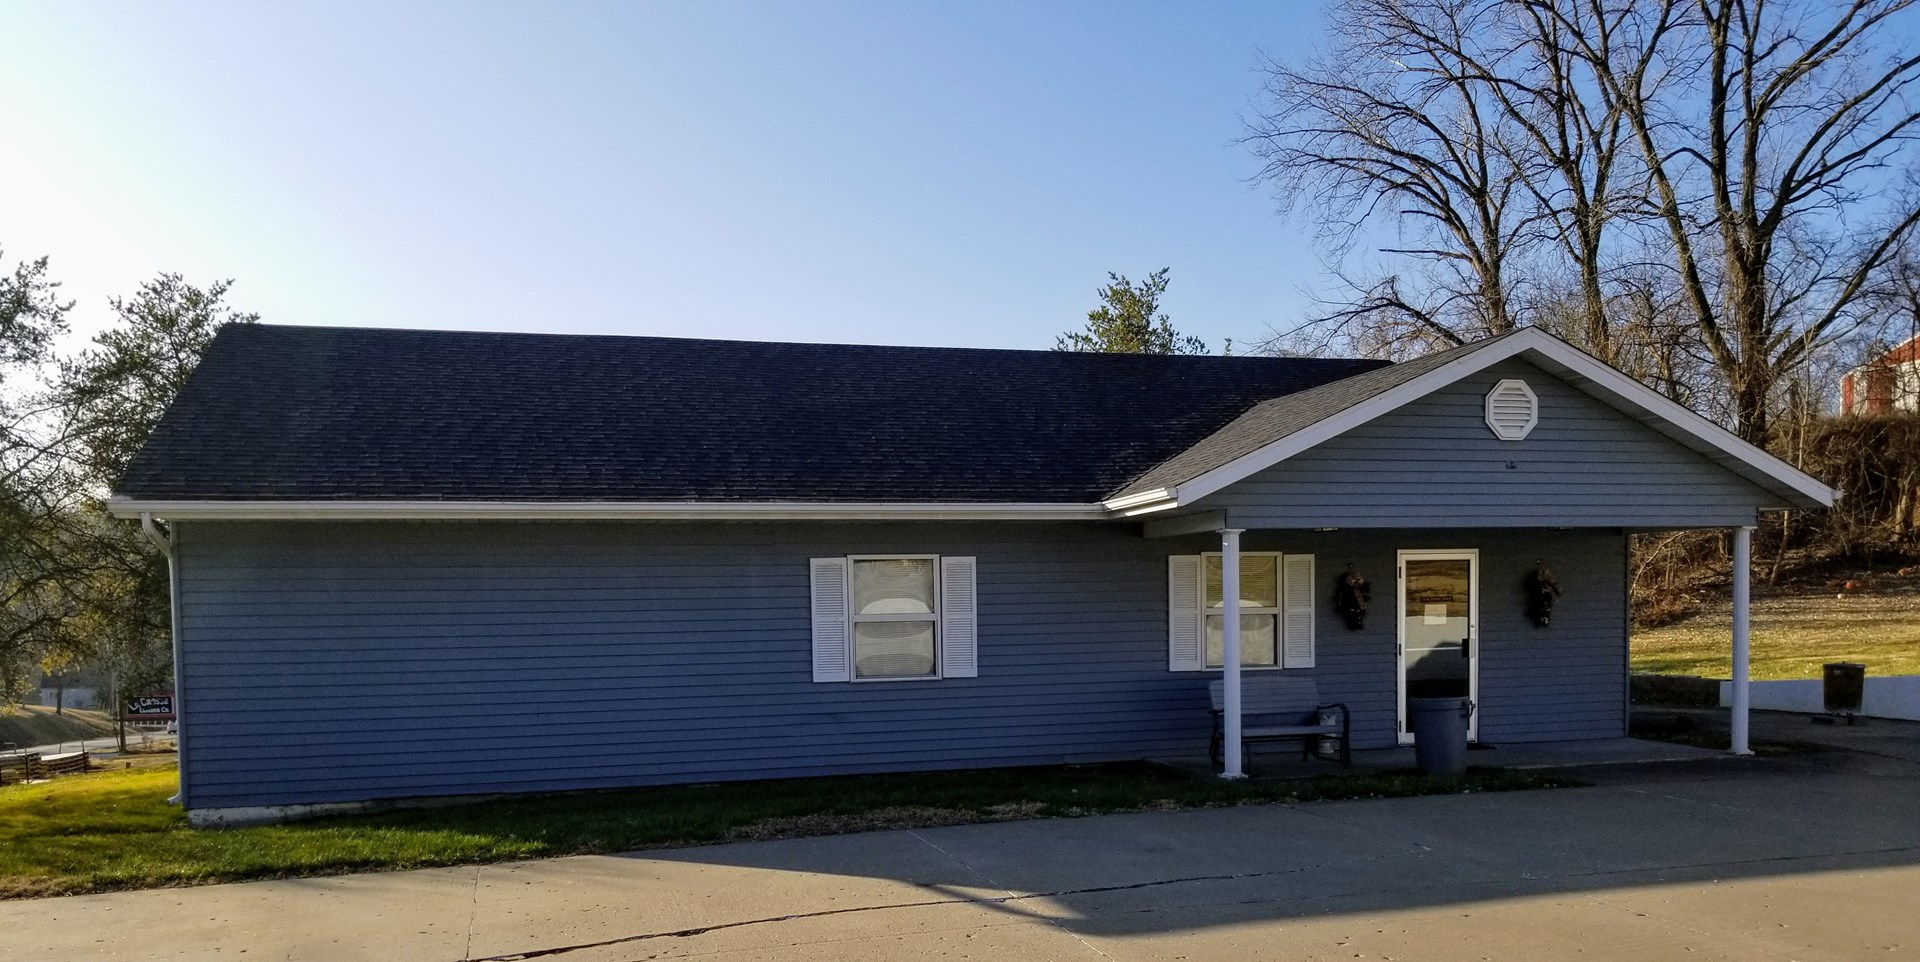 Clinic Building for Sale in Central Missouri